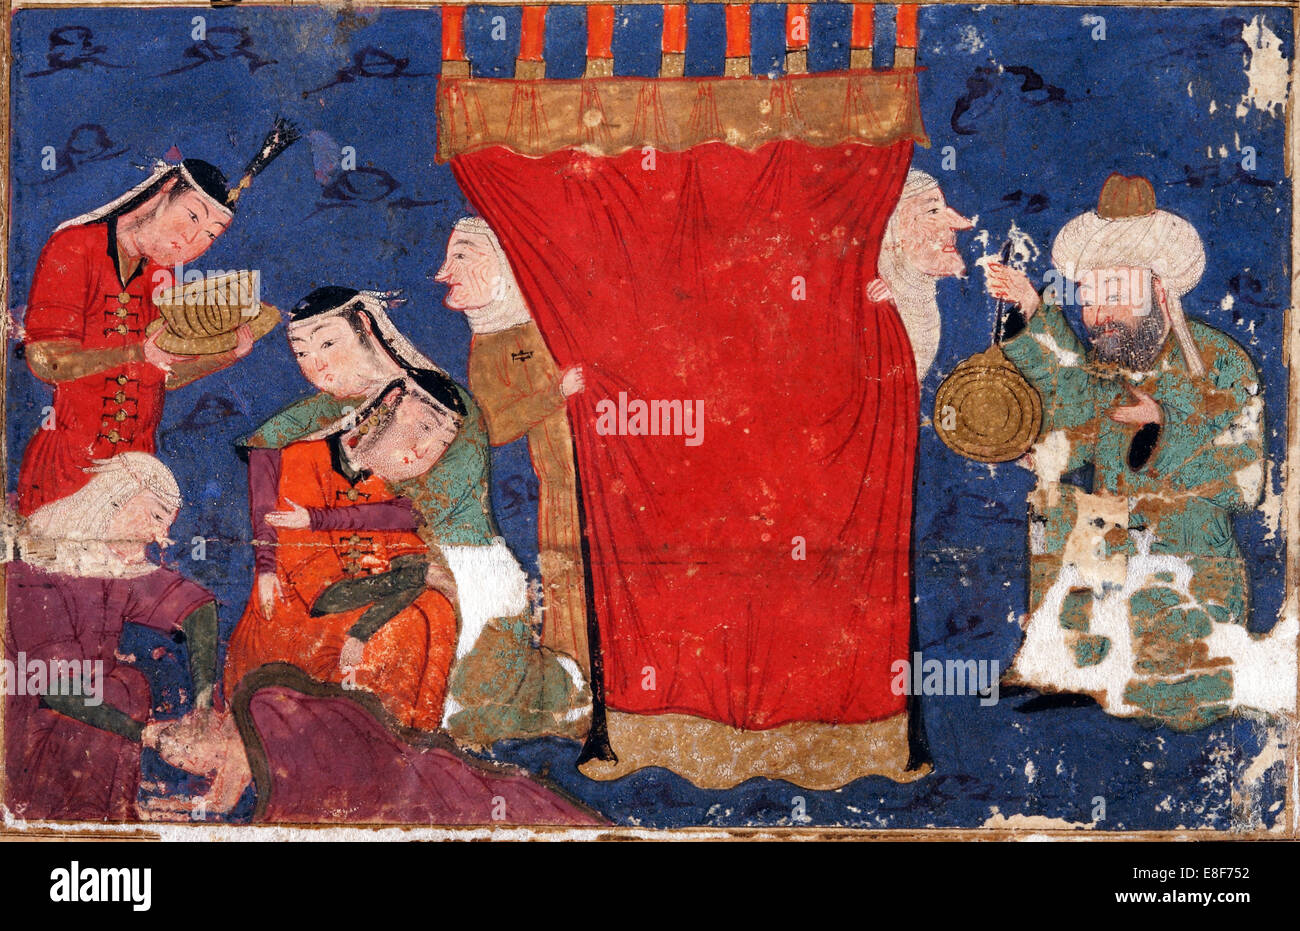 The Birth of Alexander the Great. From: Eskandar-nameh (The Book of Alexander). Artist: Anonymous - Stock Image